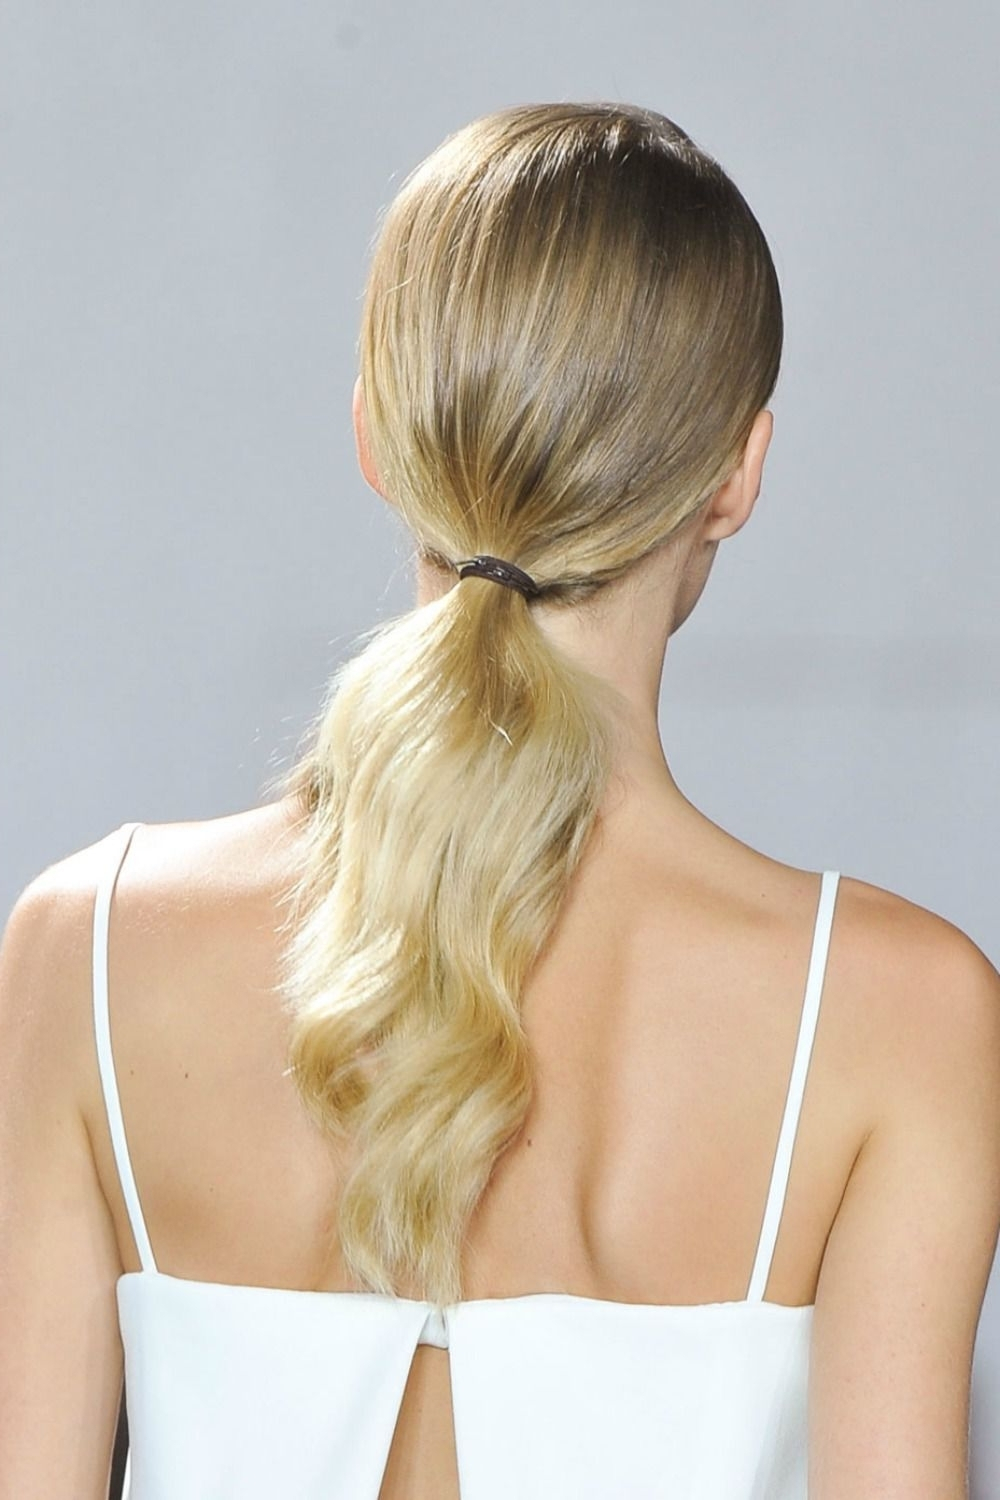 Best And Newest Glam Ponytail Hairstyles In 20 Ponytail Hairstyles – Easy Ponytail Ideas You Should This Summer (View 11 of 20)